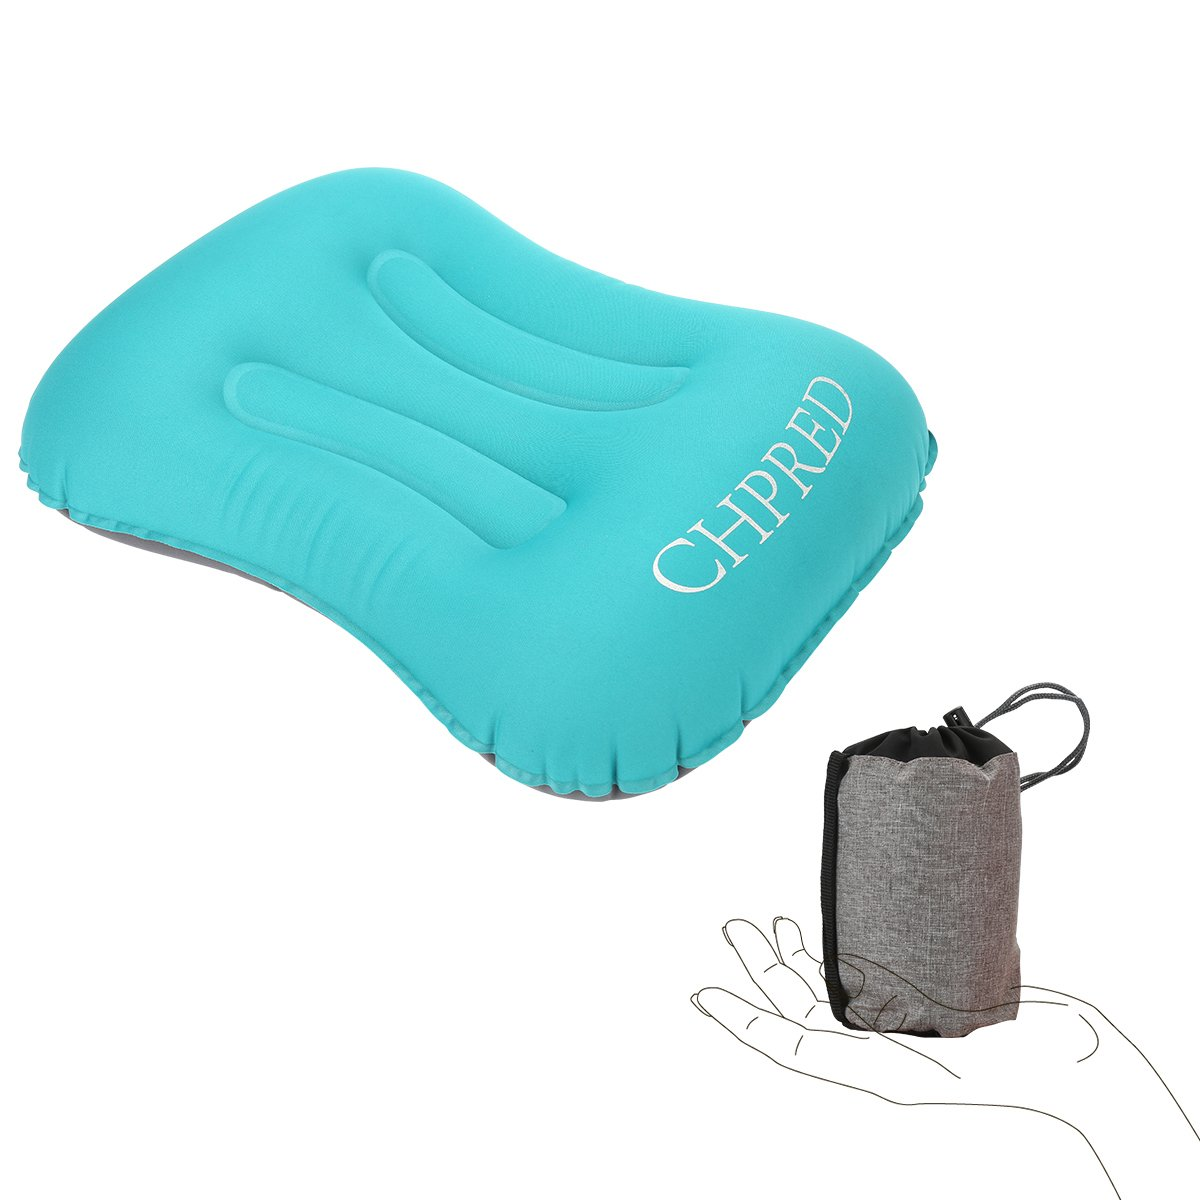 Travel Air Pillow for Backpacking Hiking Airplane Ultralight 3oz Compact Pocket Size Inflatable Camping Pillows Comfortable Ergonomic Design for Side /& Back Sleepers